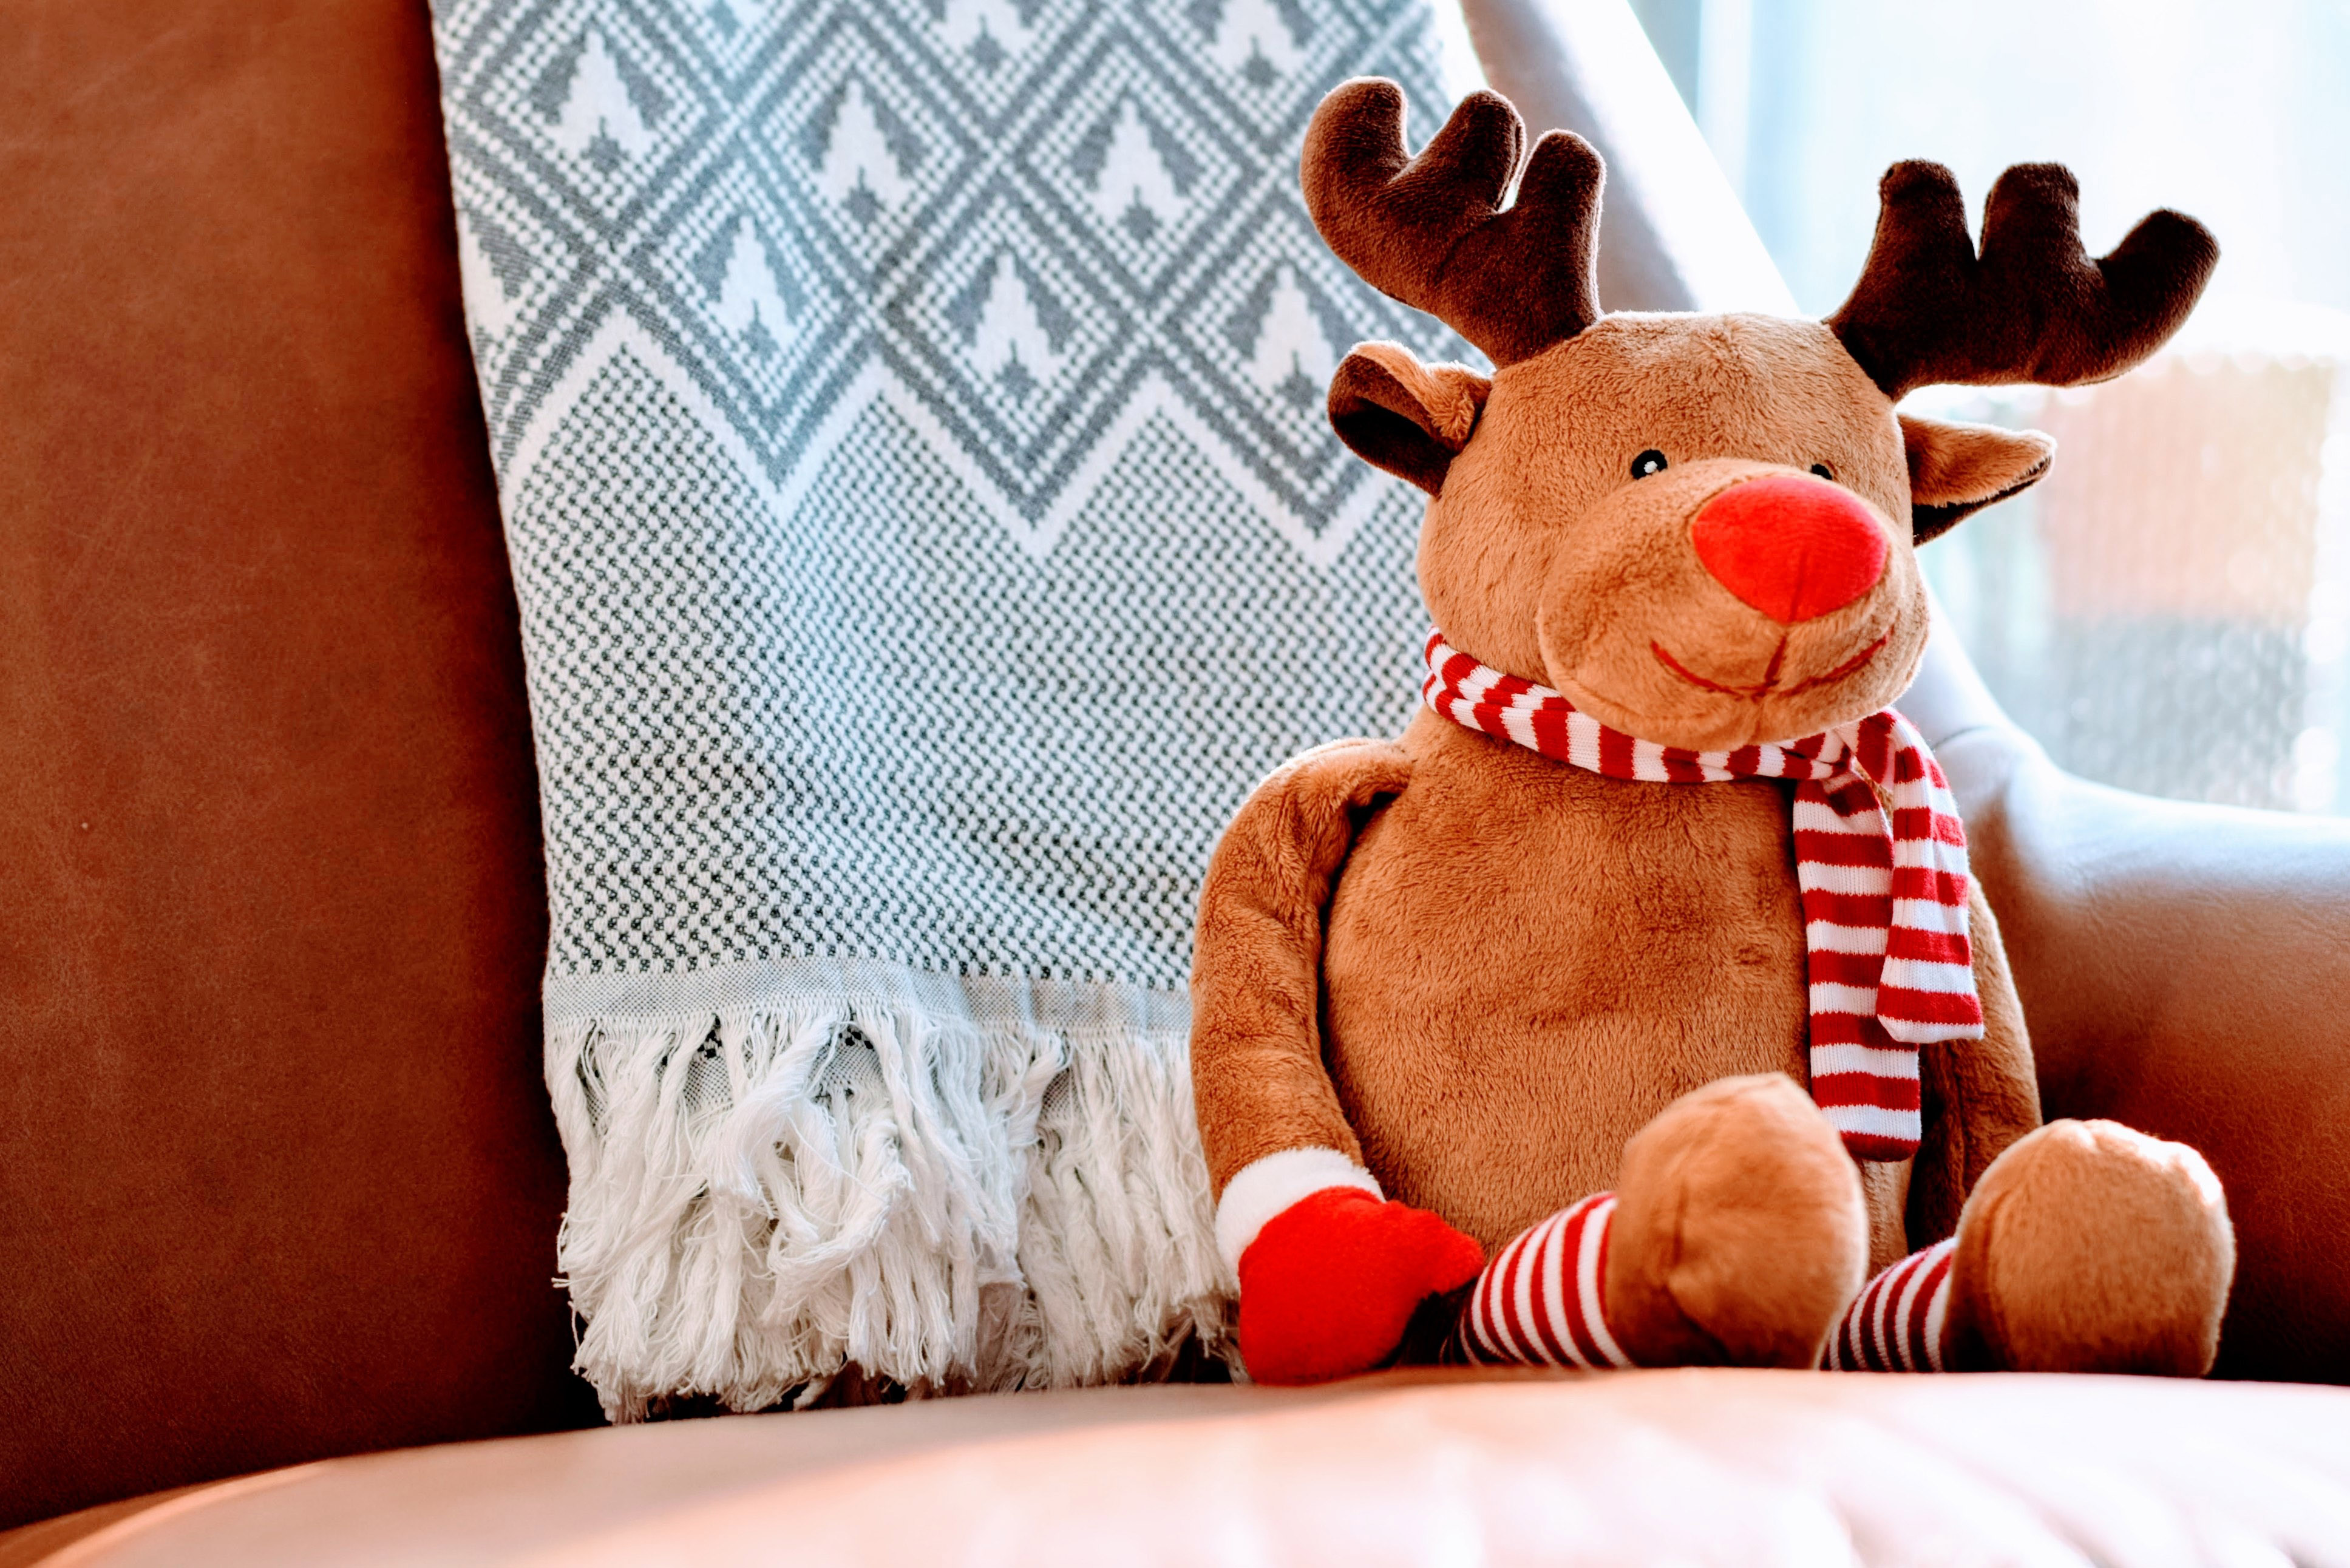 Stuffed Rudolph The Red Nosed Reindeer Christmas Image